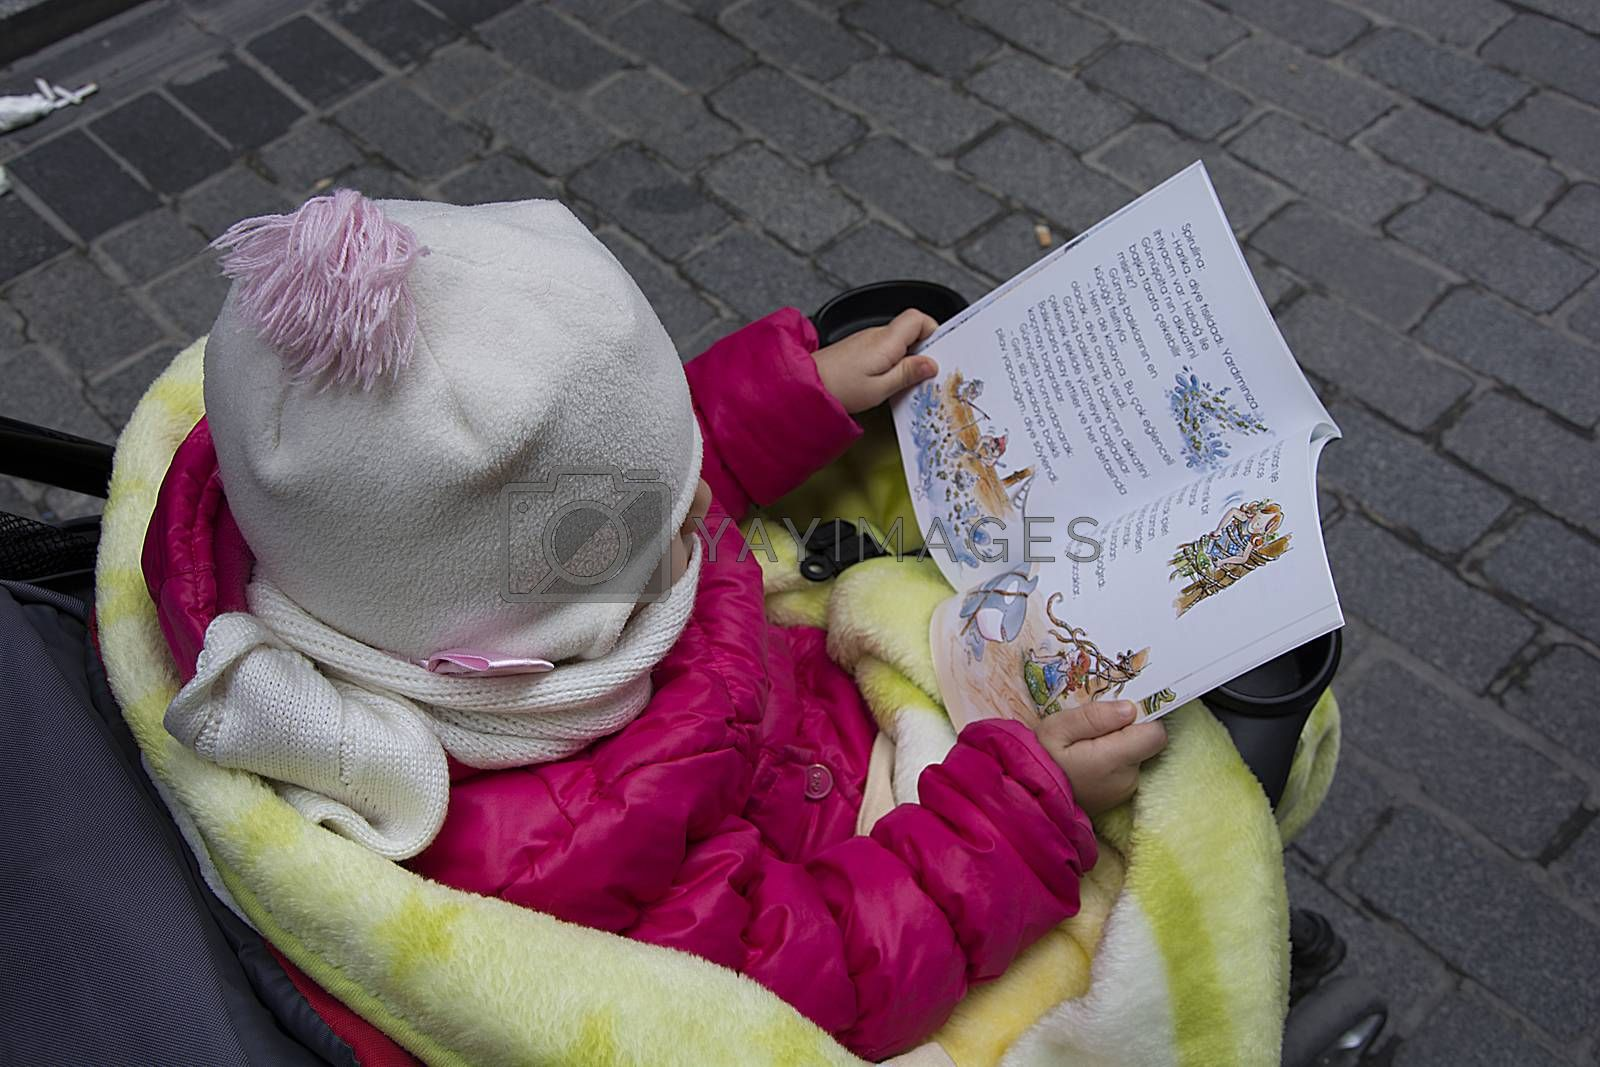 The child is reading the book by Nursel